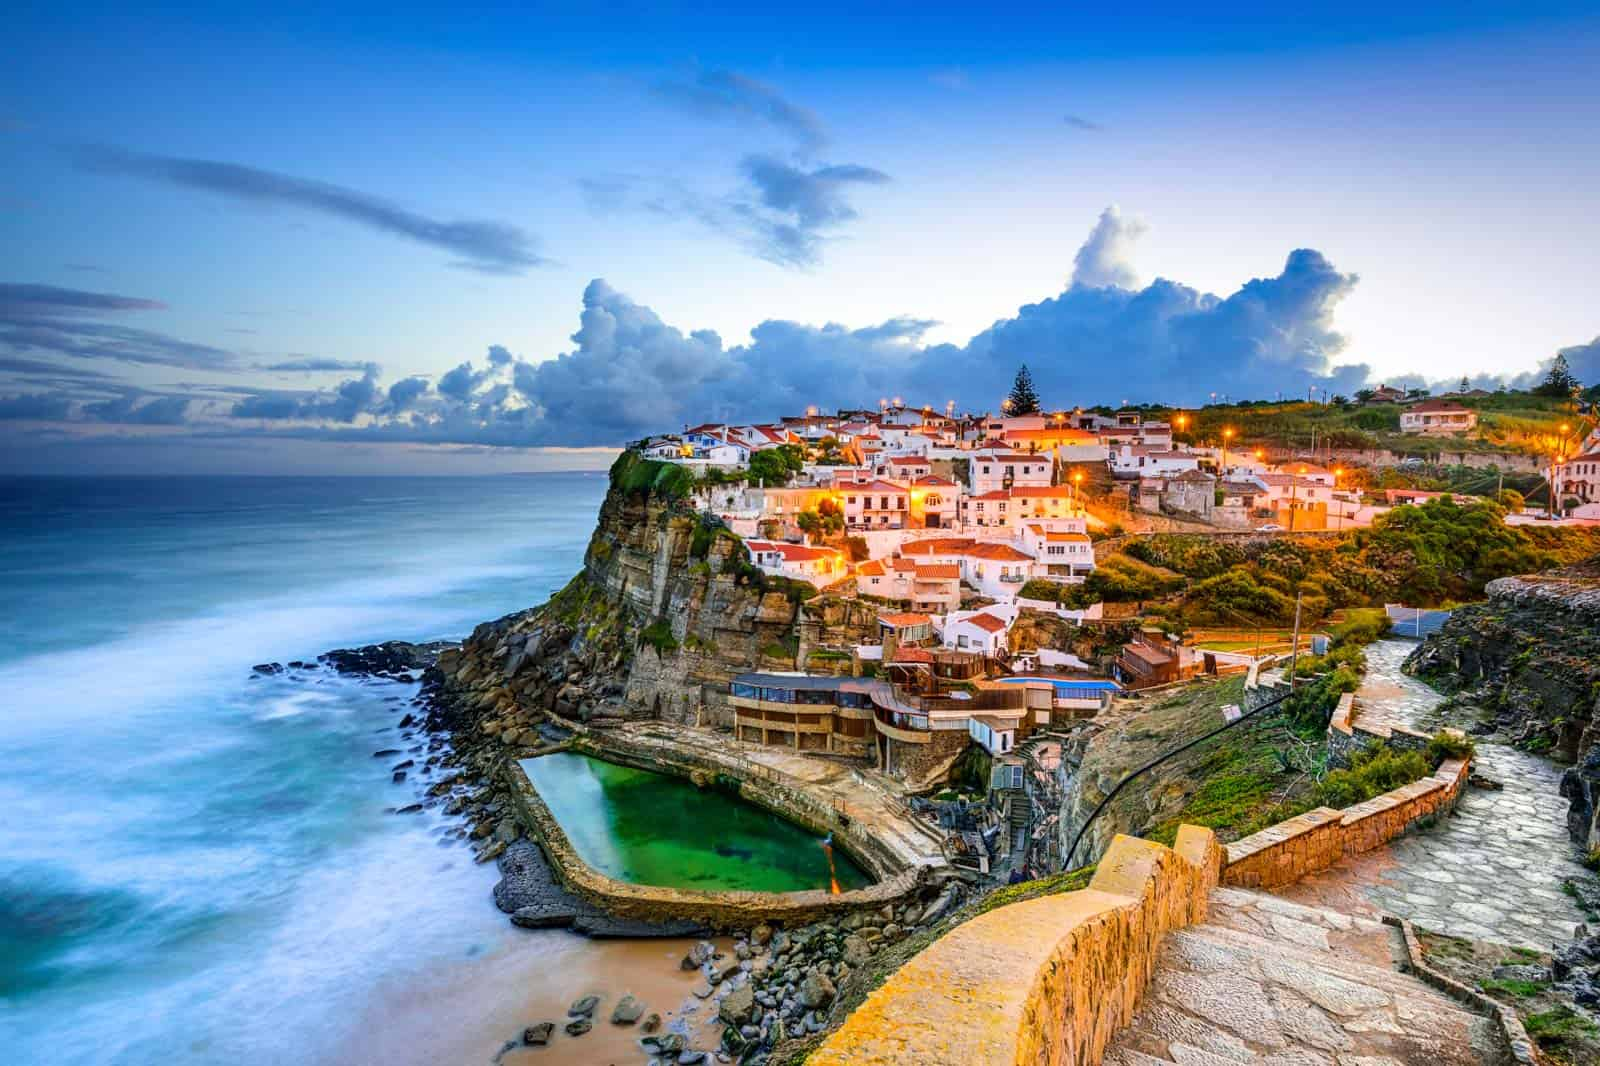 Portugal voted Nº 1 European destination